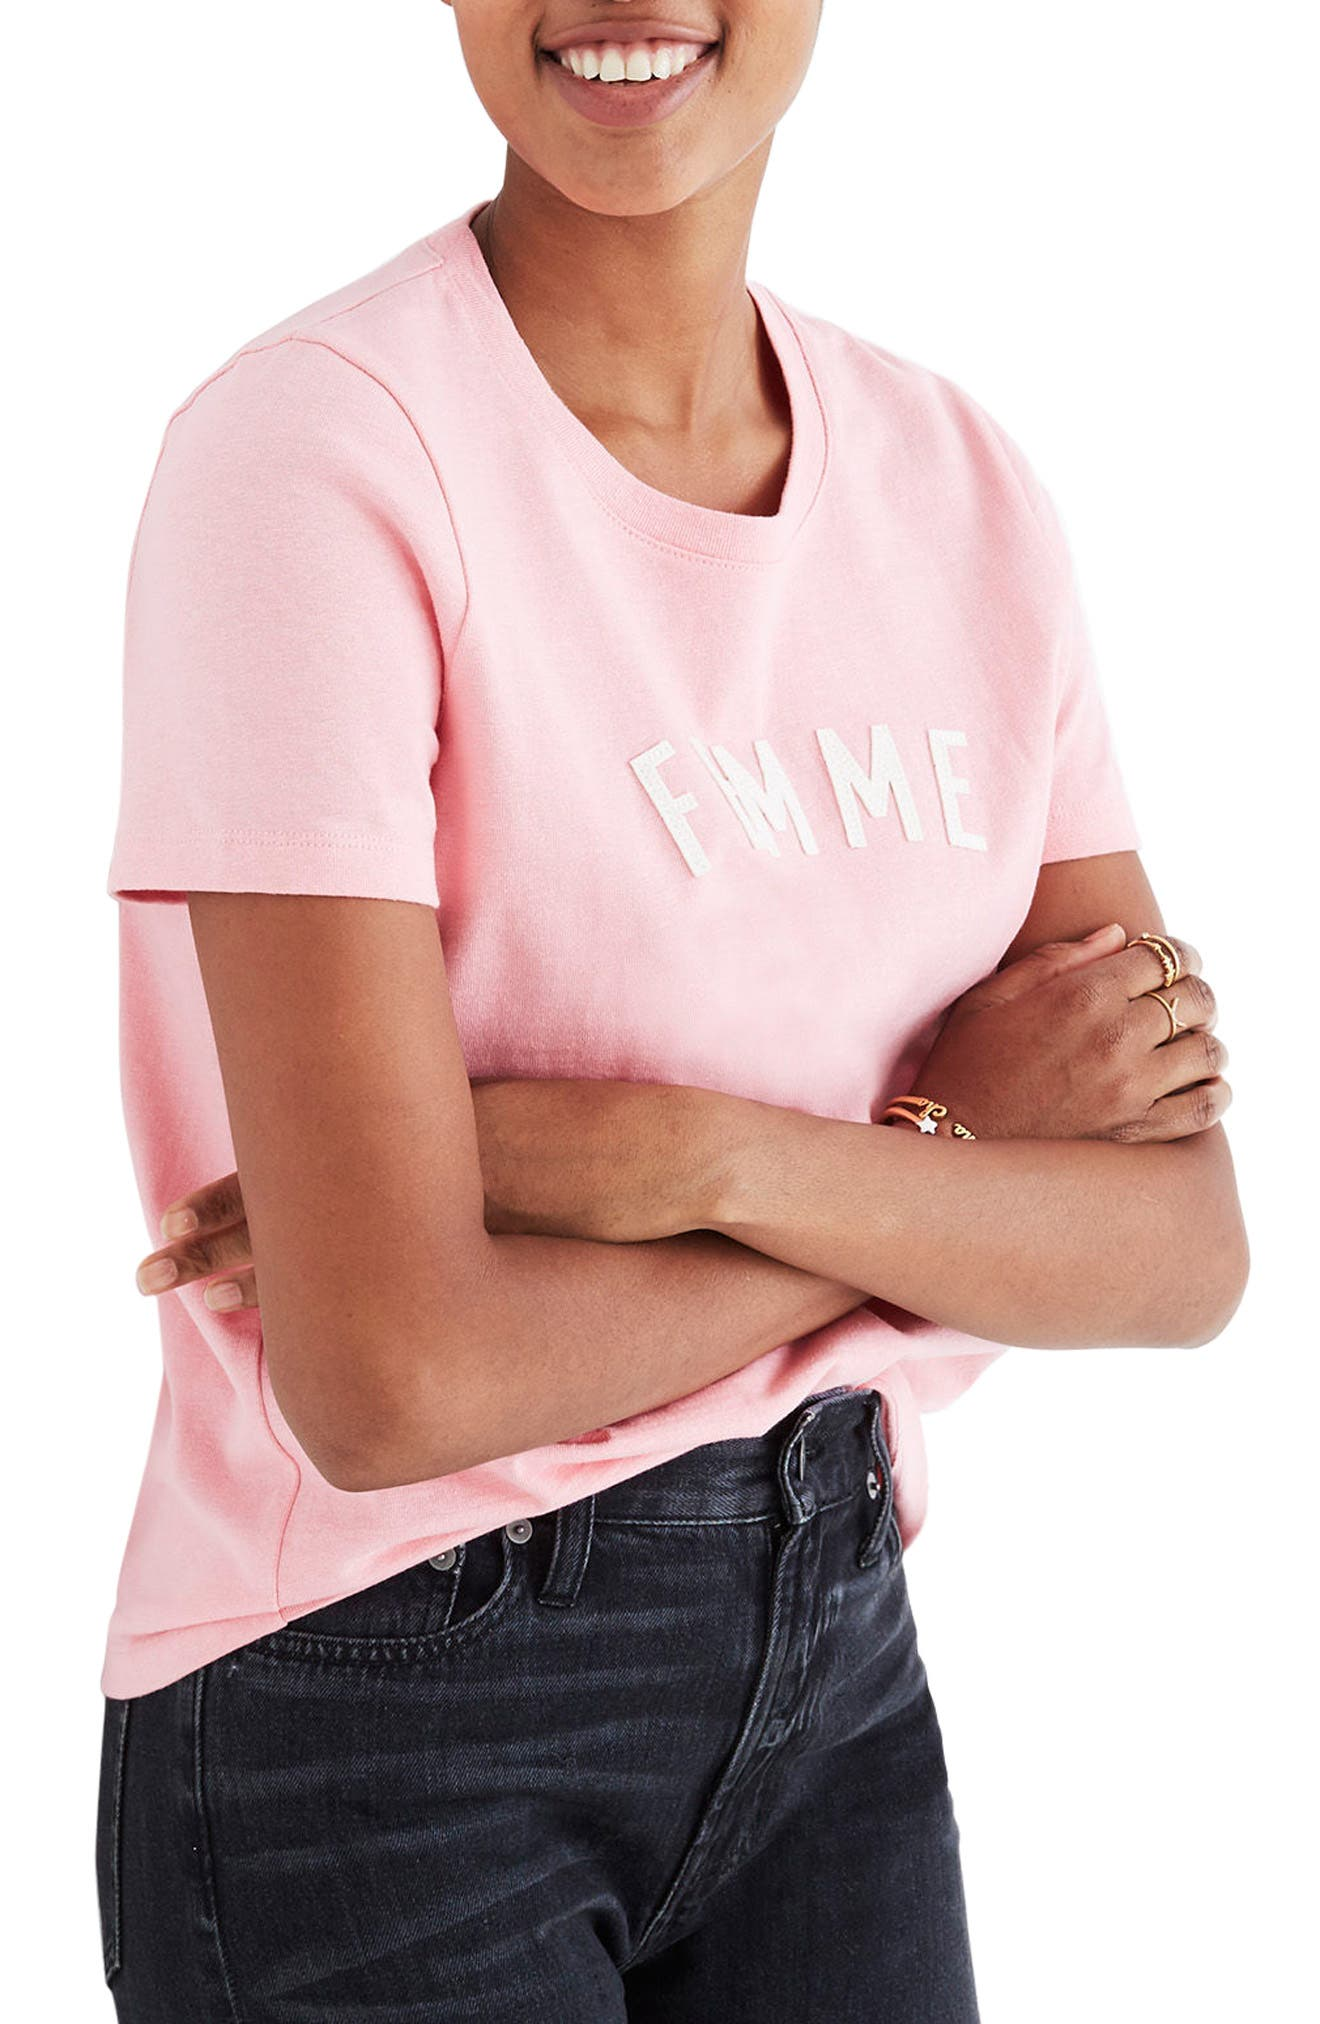 Femme Tee,                             Main thumbnail 1, color,                             Rose Wine